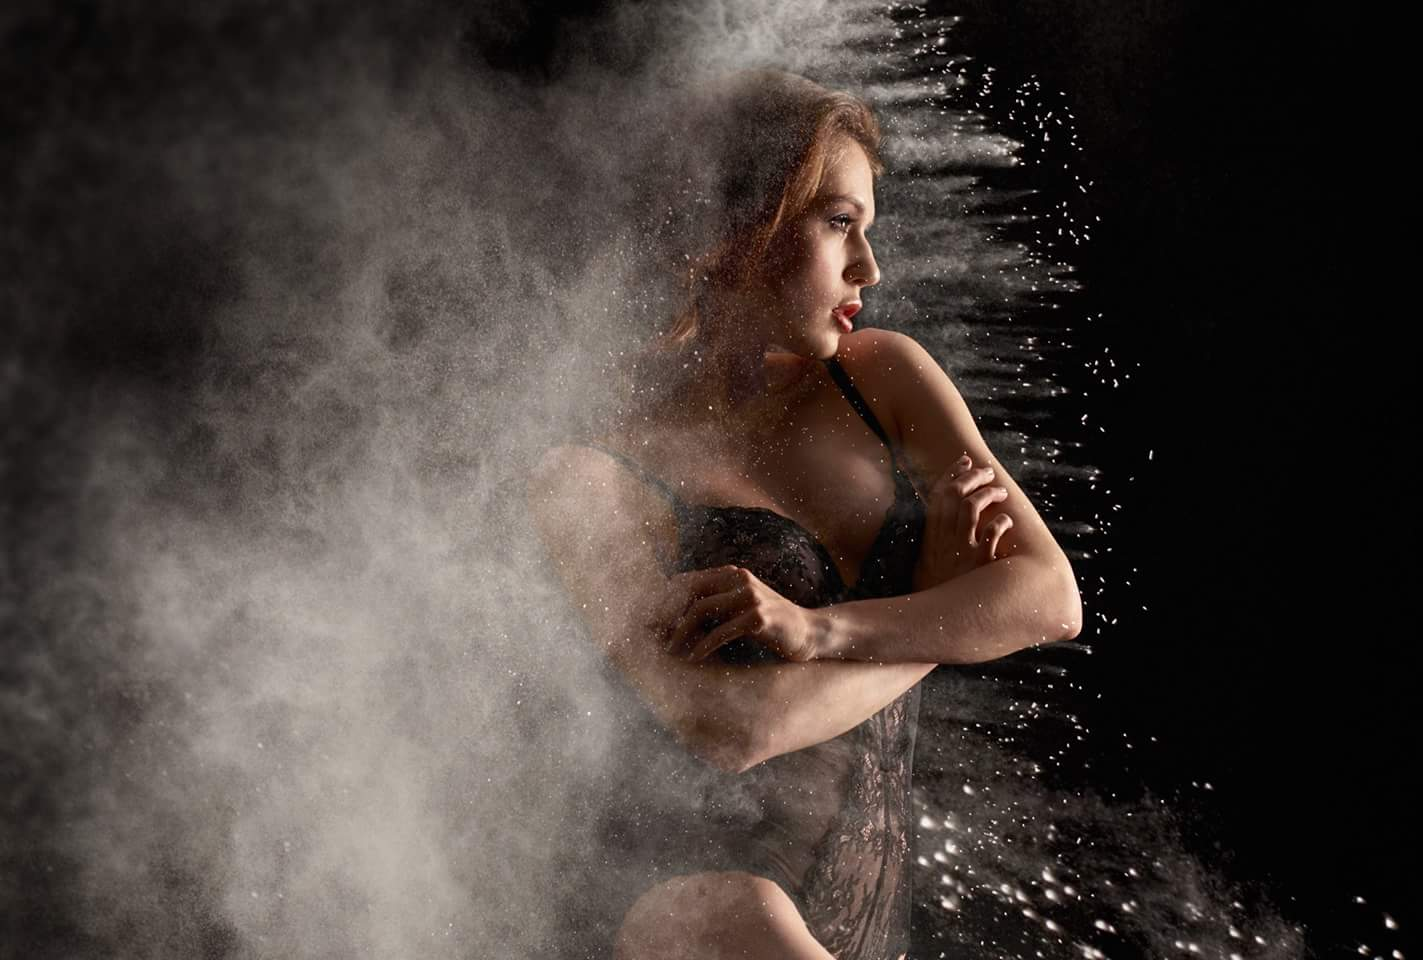 How Do You Create Flour Photos Without Messing Up the Studio? You Cheat!